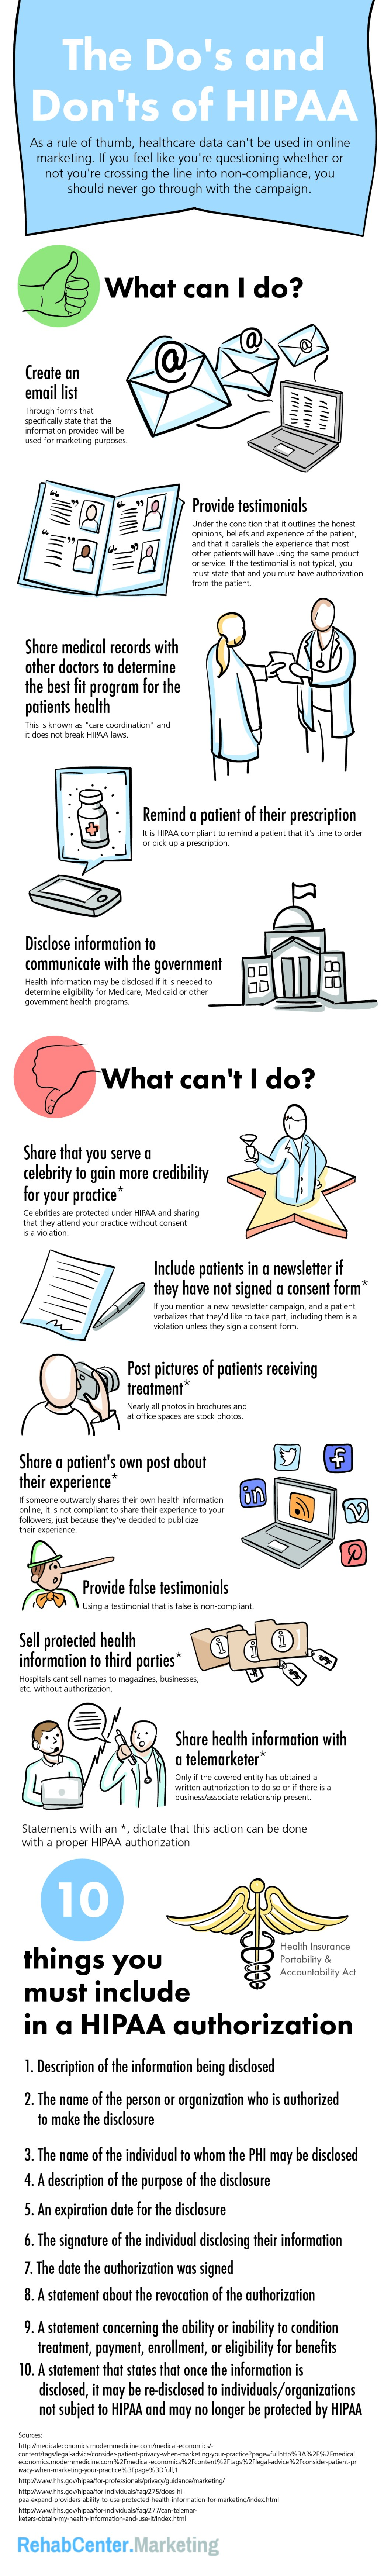 HIPAA Privacy Act: How It Protects Patient Confidentiality and Healthcare Information - Infographic